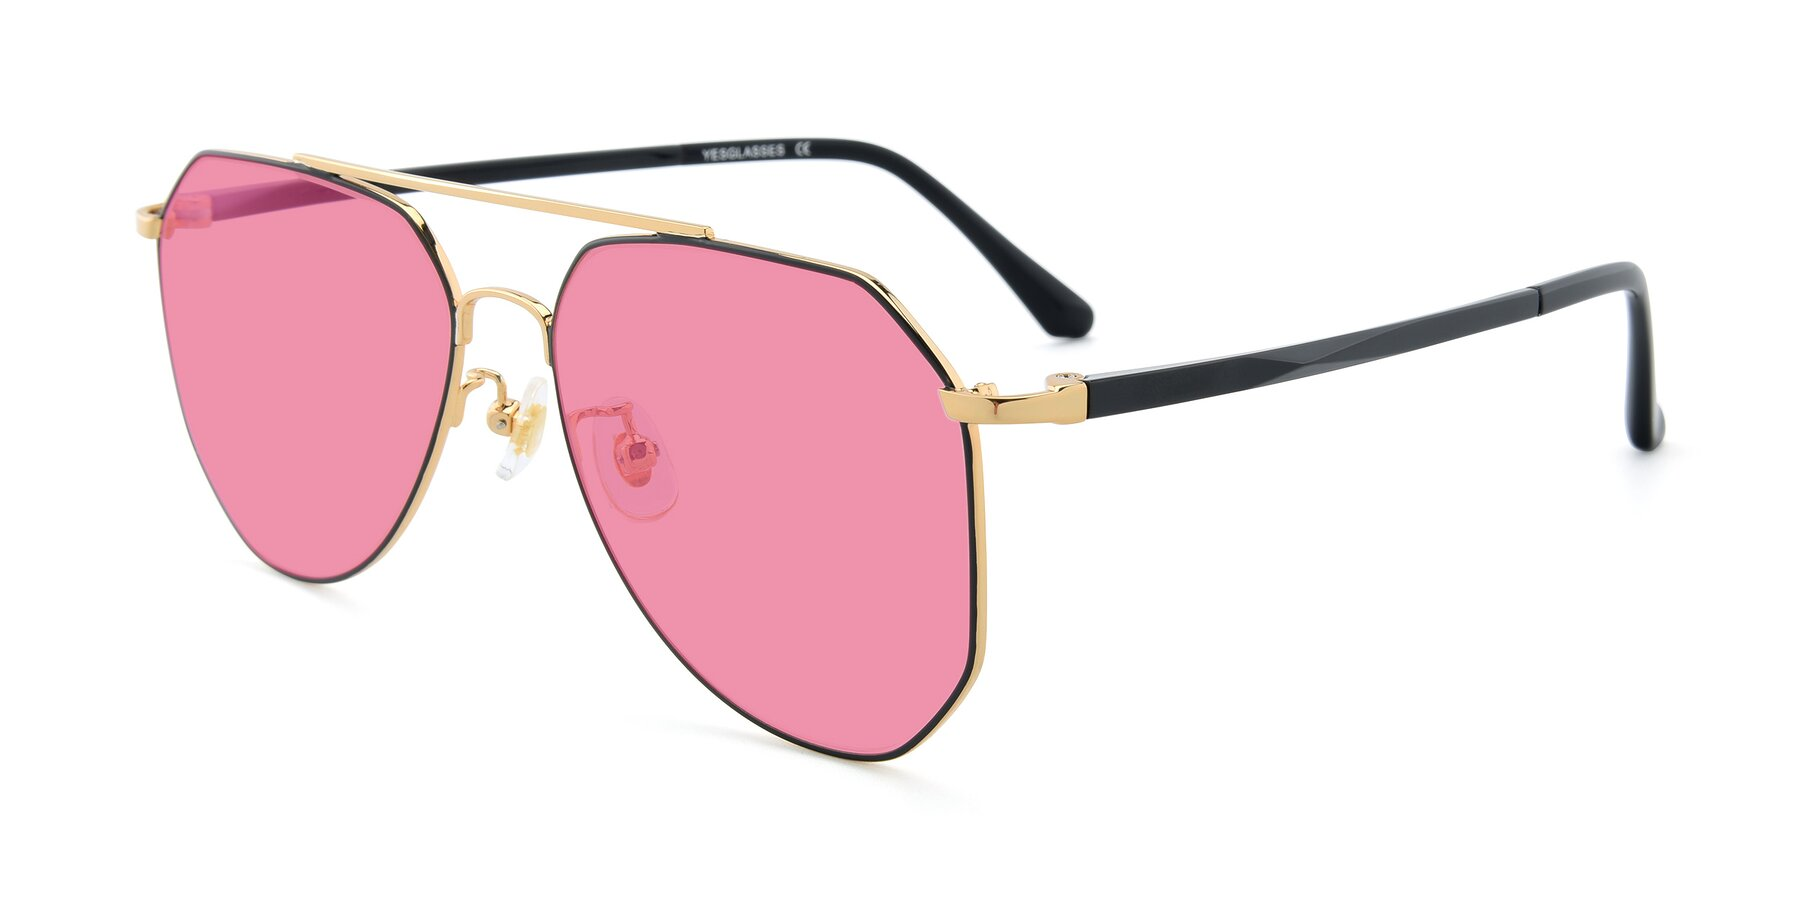 Angle of XC-8040 in Black/ Gold with Pink Tinted Lenses